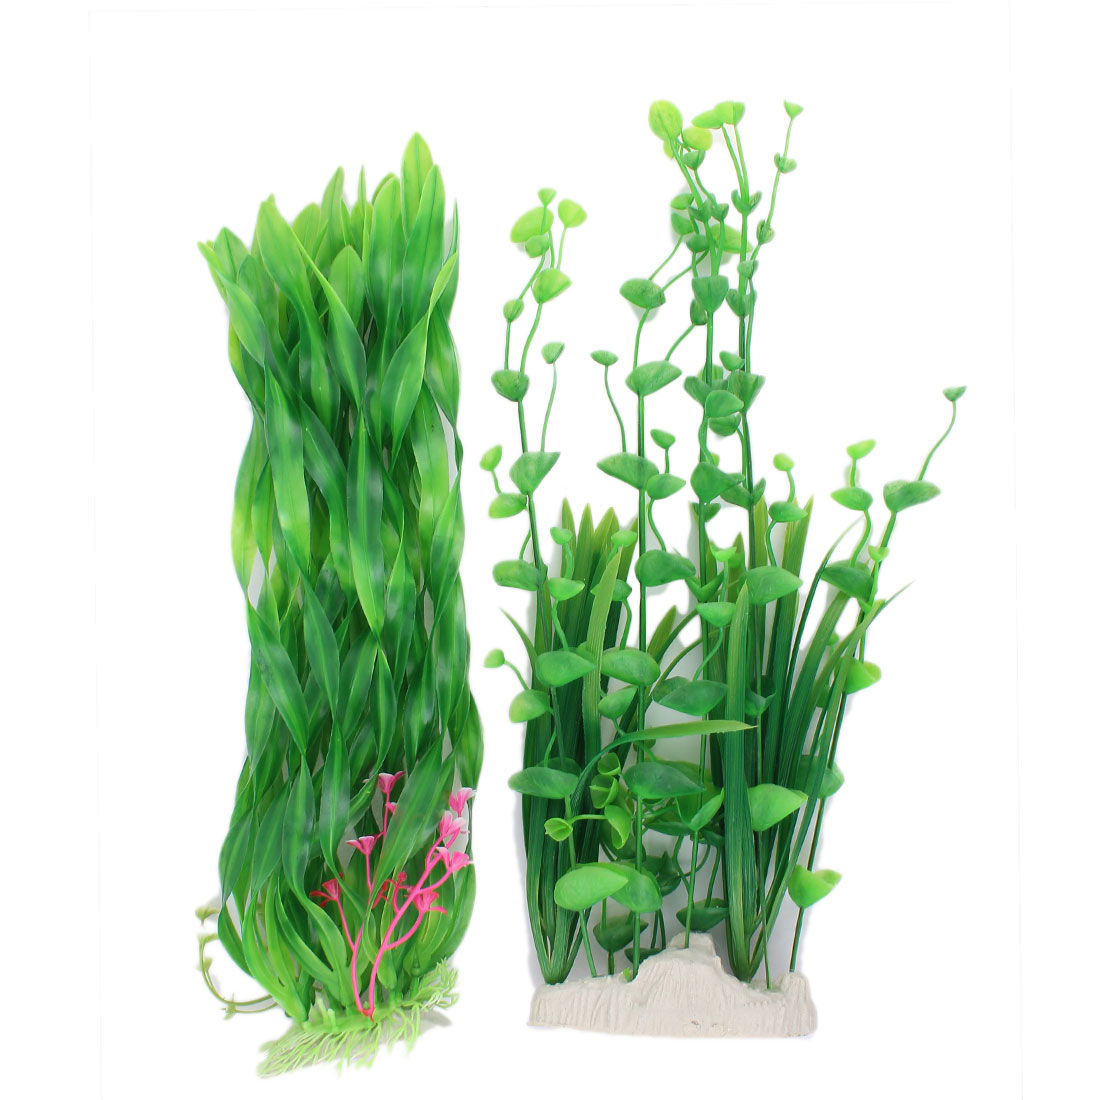 Plastic Grass Adorn Manmade Aquascape Aquarium Sea Plant 35cm High 2PCS